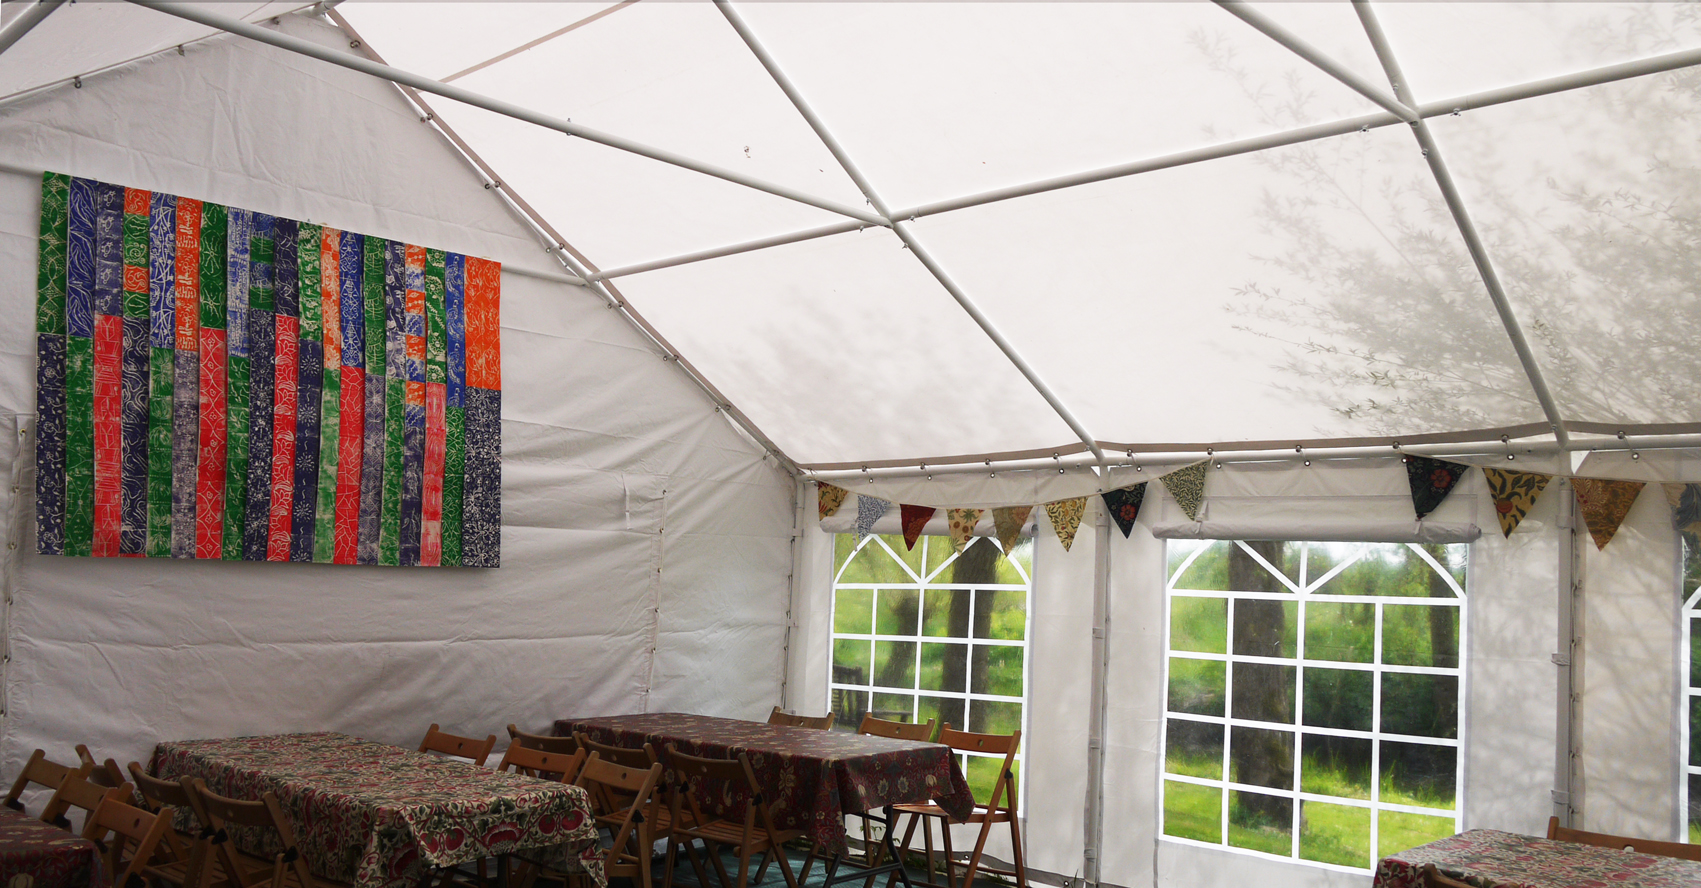 After - inside the new marquee